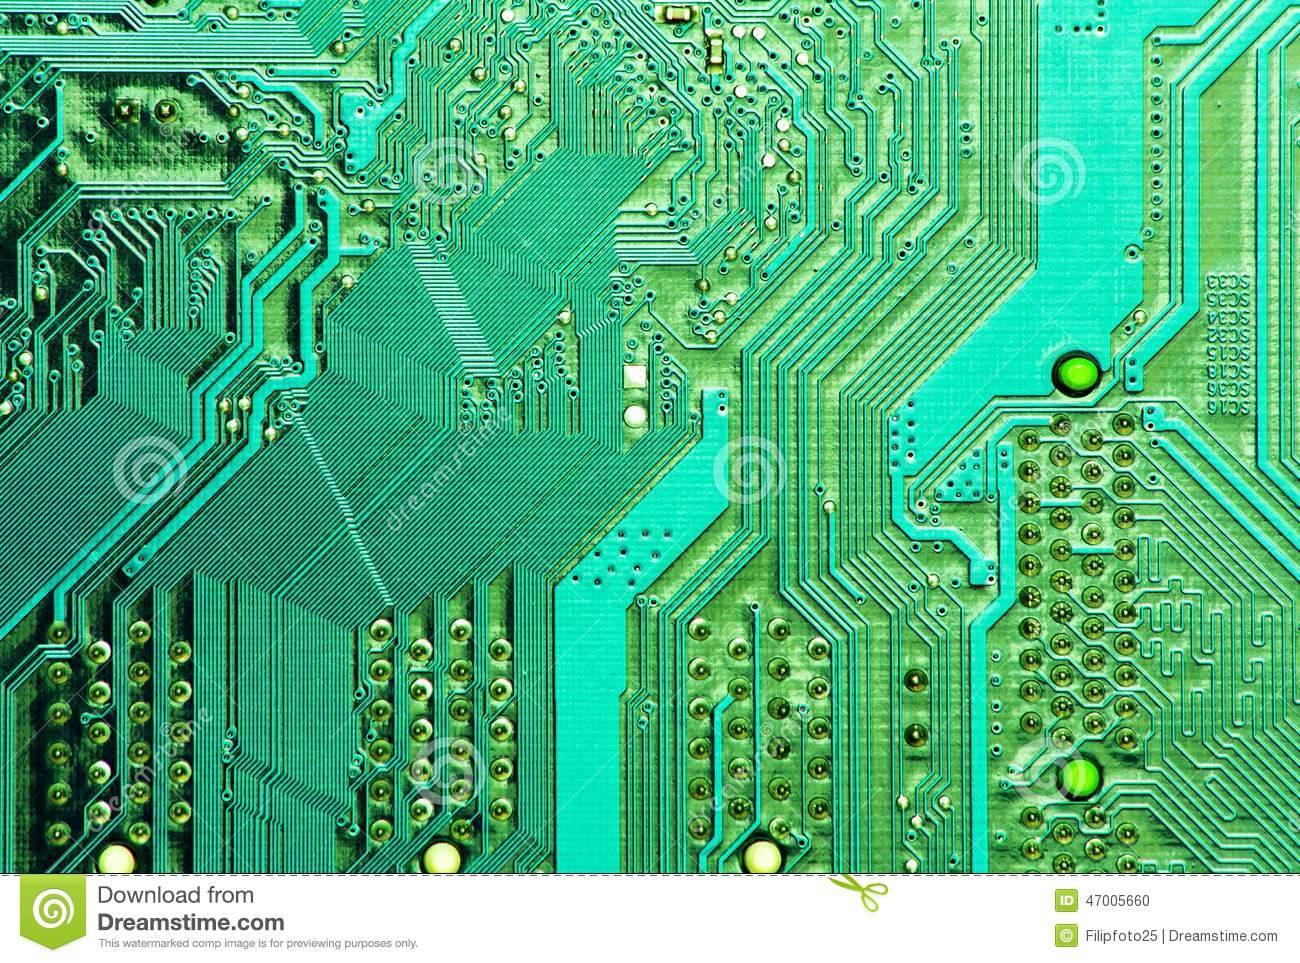 Pcb Board Stock Photo Image Of Assembly Current Electric 47005660 Detail A Printed Circuit Royalty Free